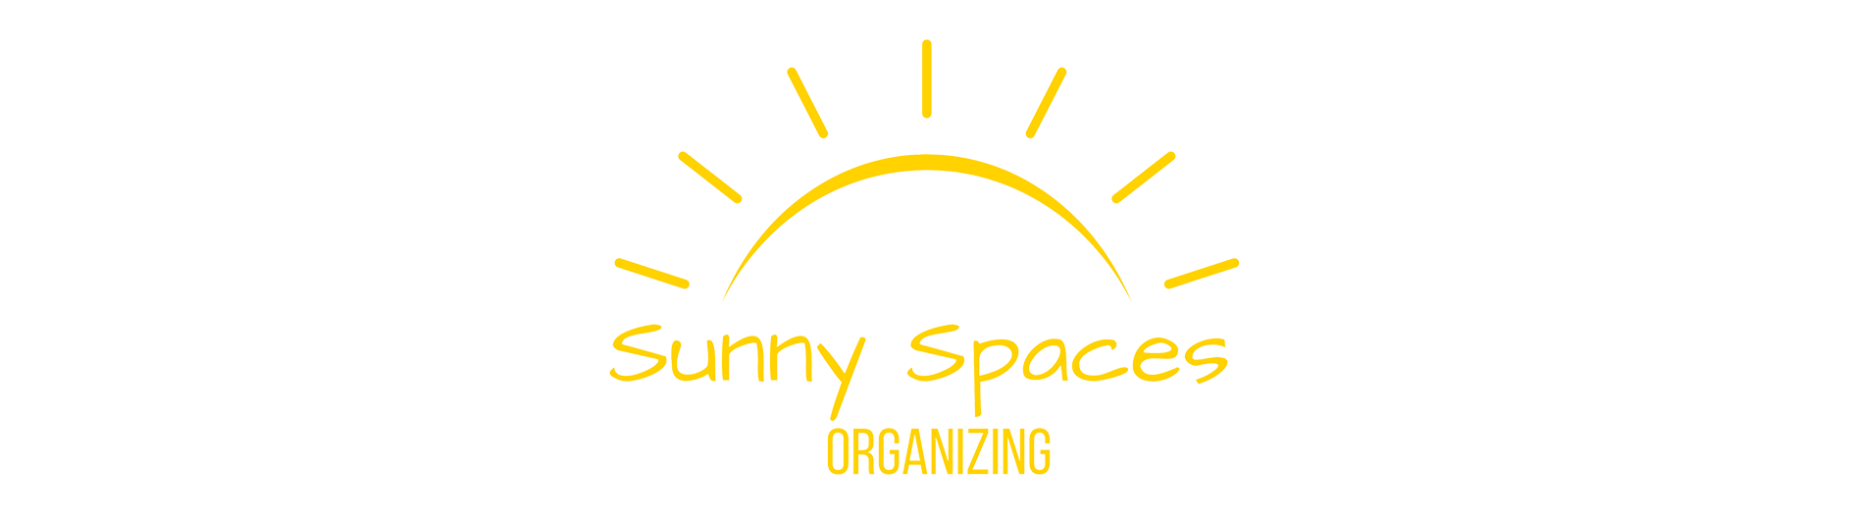 Sunny Spaces Organizing